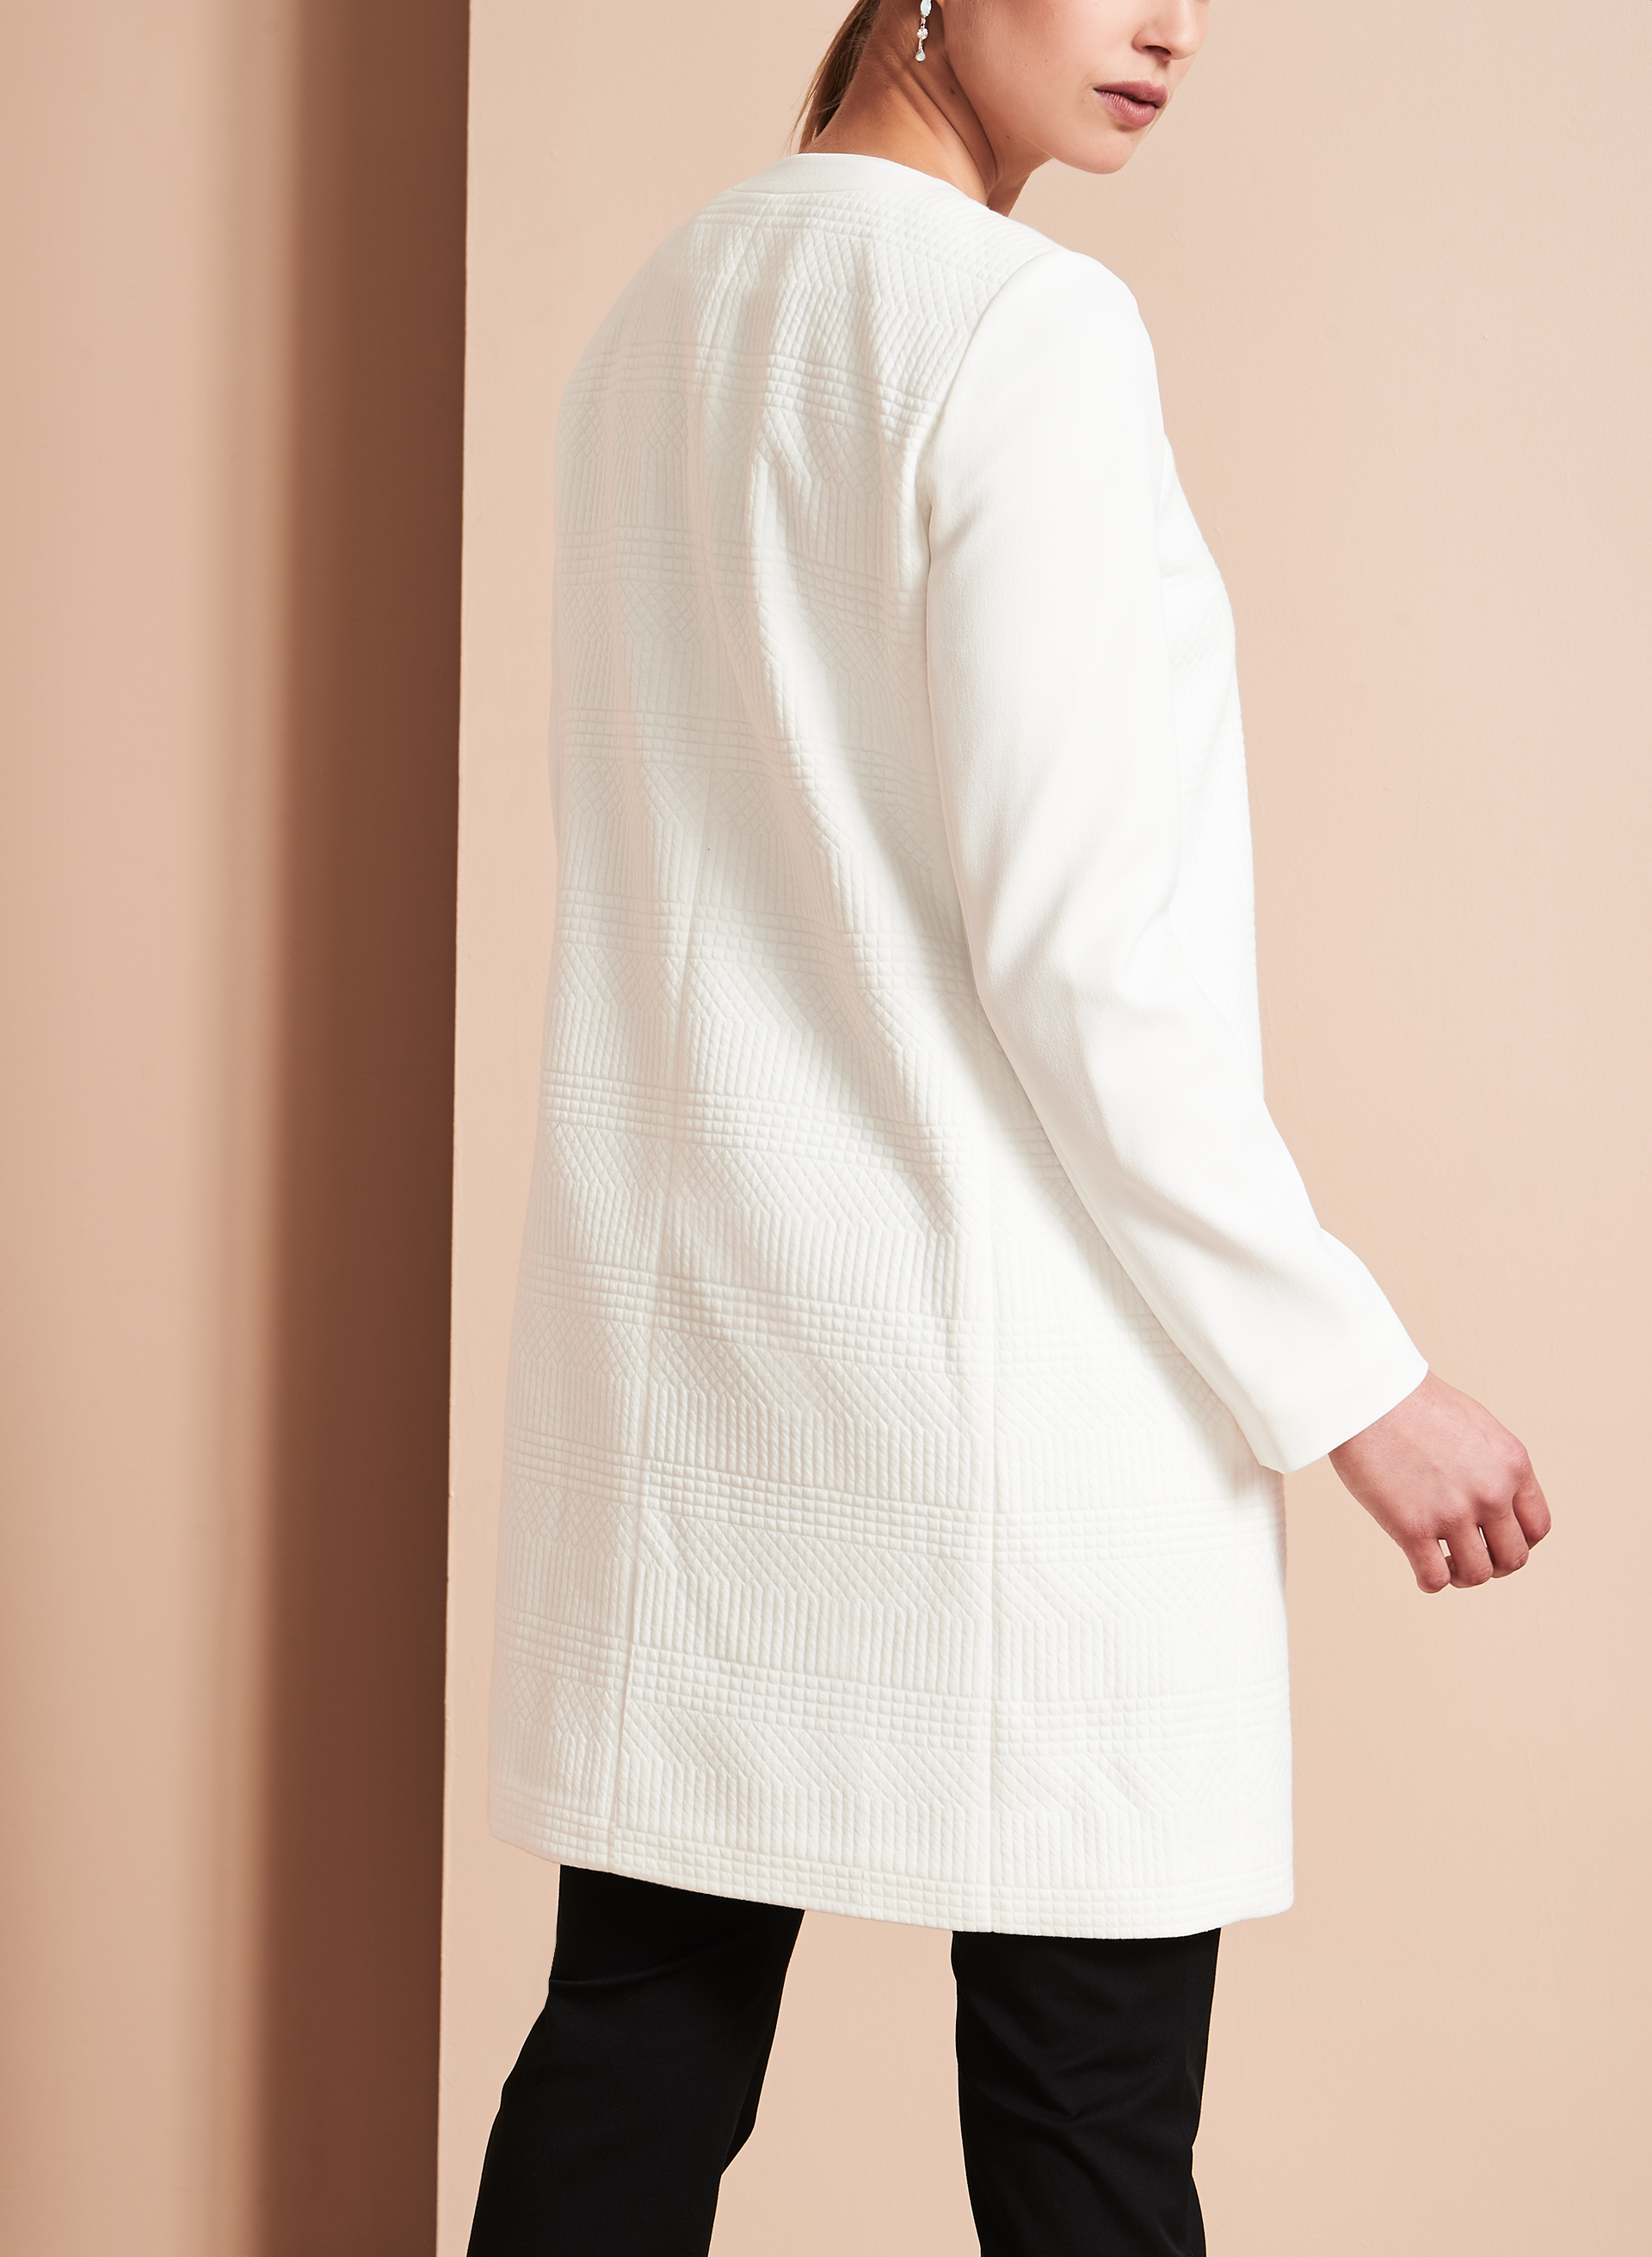 Tahari - Knit Jacquard Open Jacket, Off White, hi-res